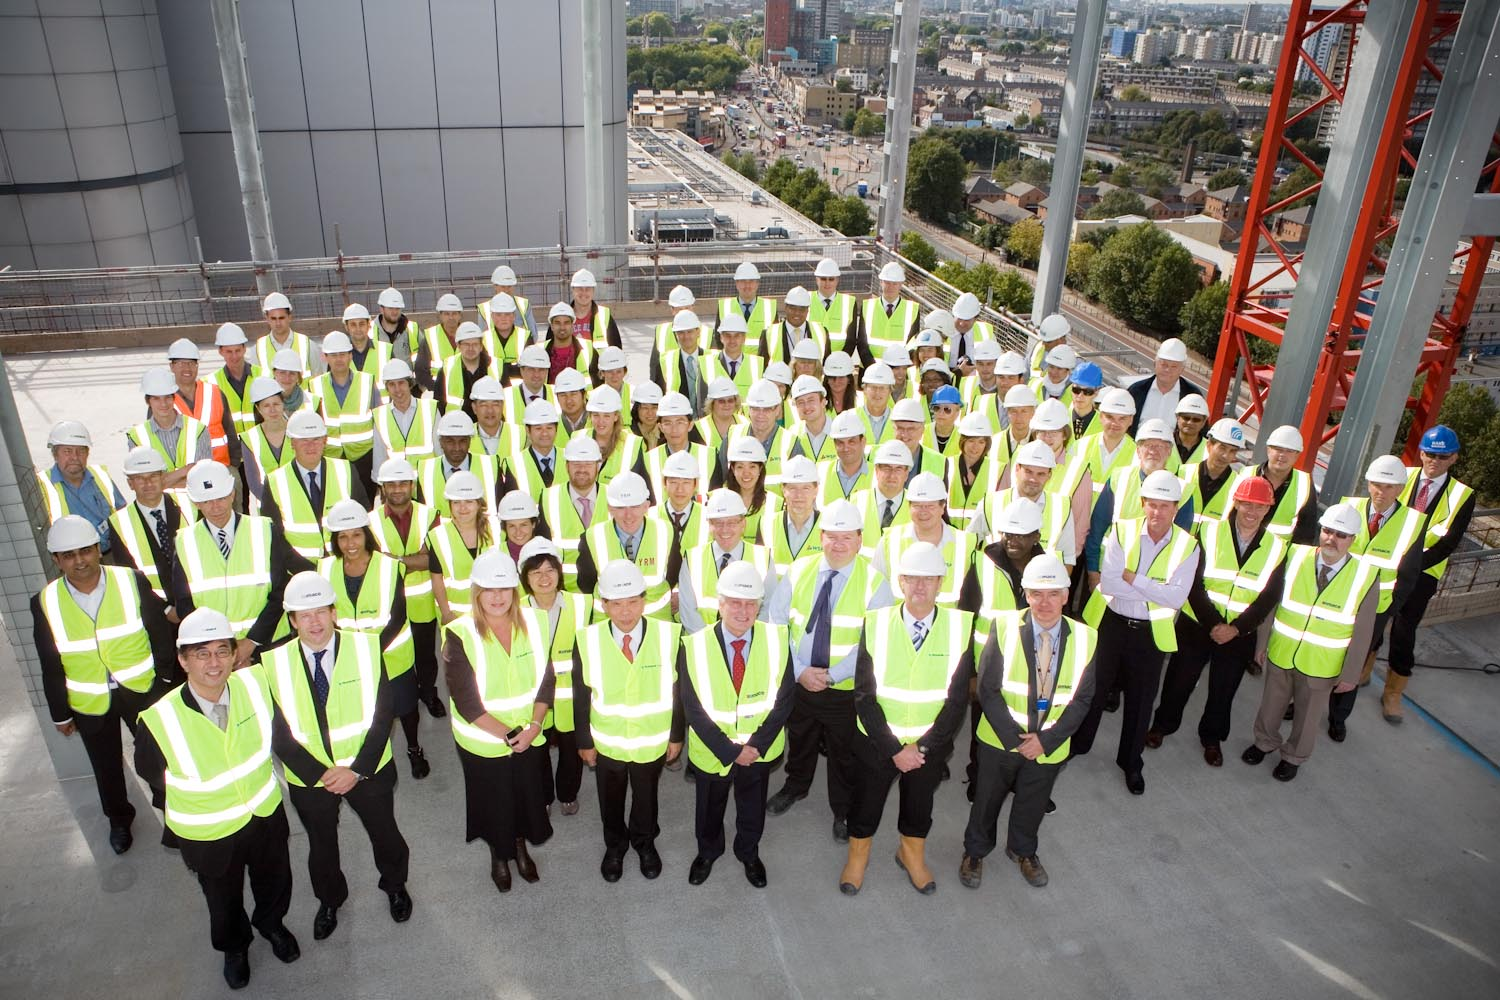 A group photo taken on top of a half finished skyscraper, for Mace.